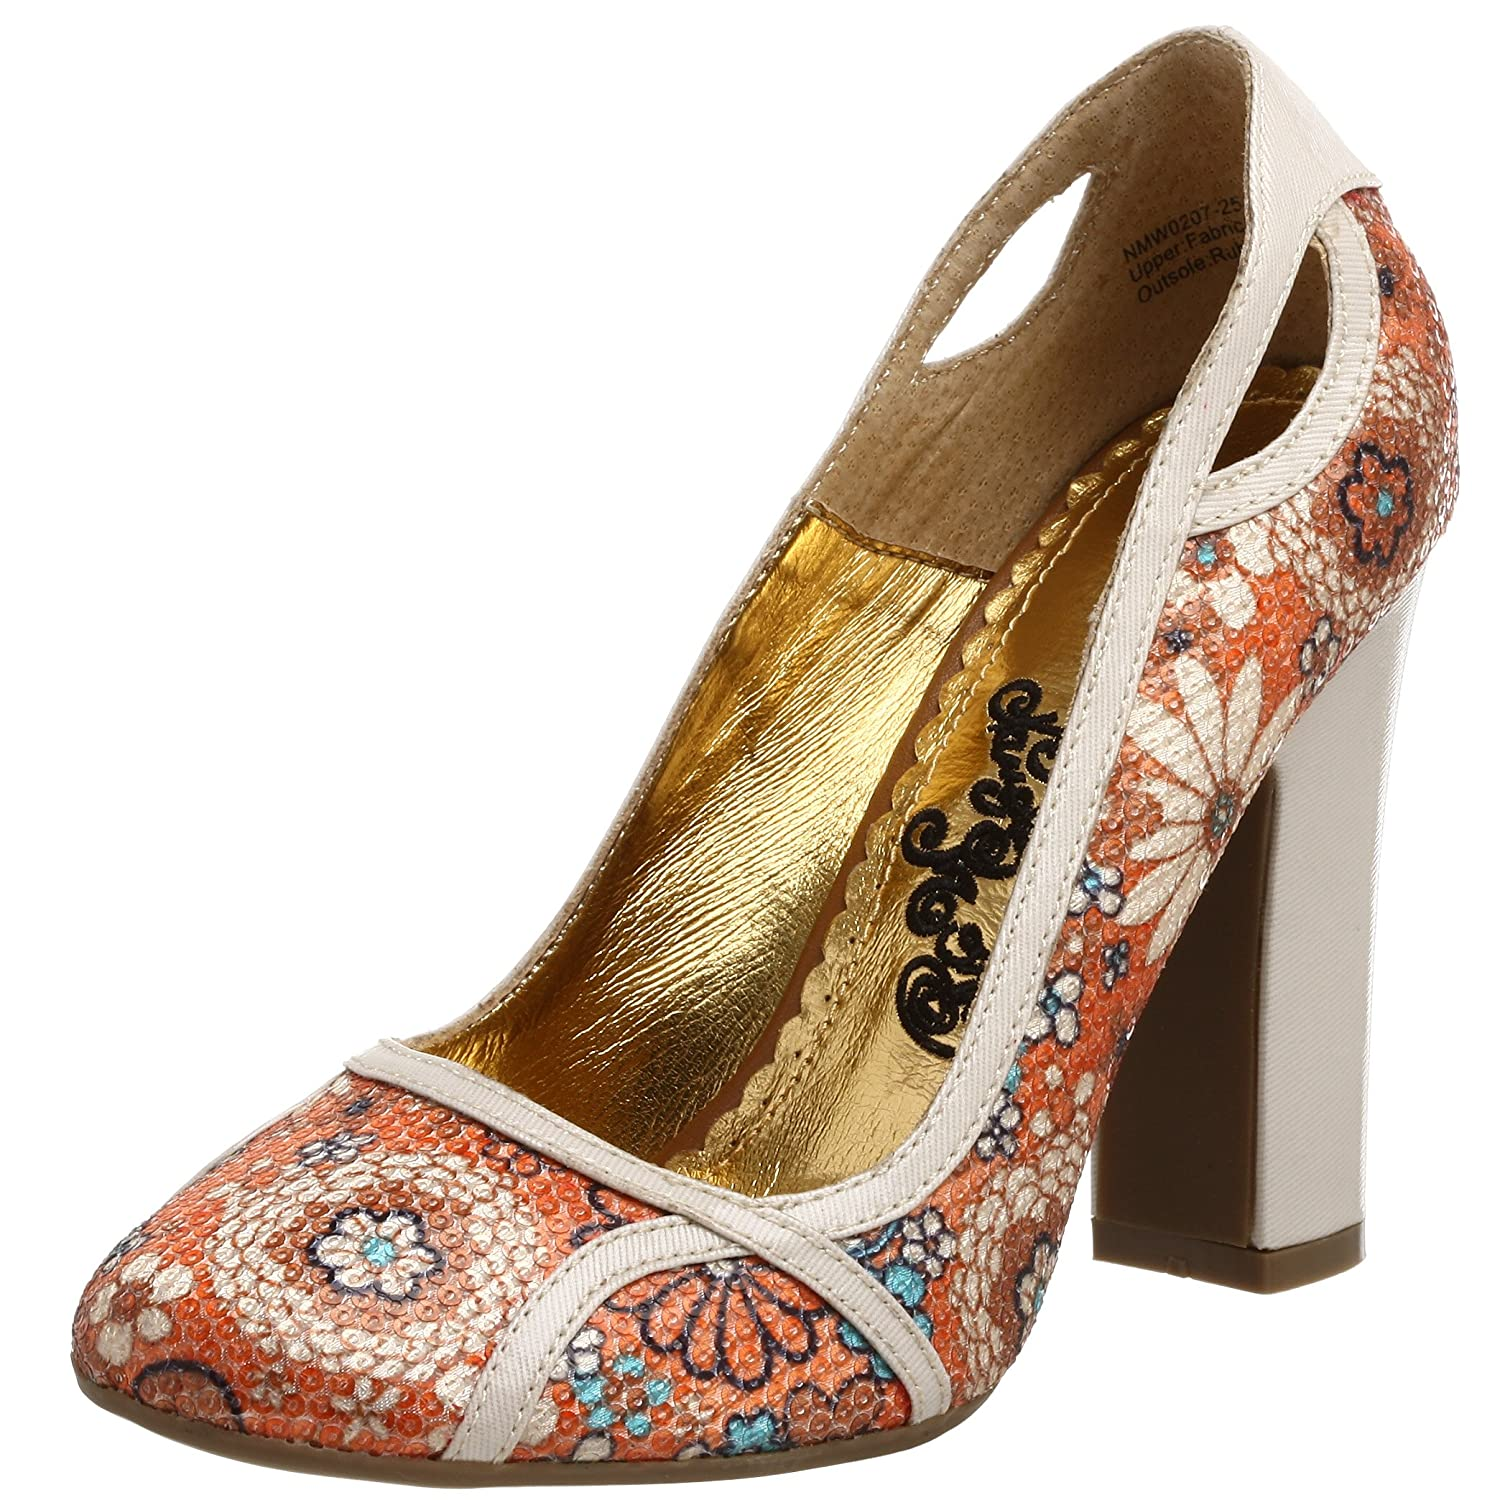 Naughty Monkey Women's Sequin Bouquet Pump - Free Overnight Shipping & Return Shipping: Endless.com